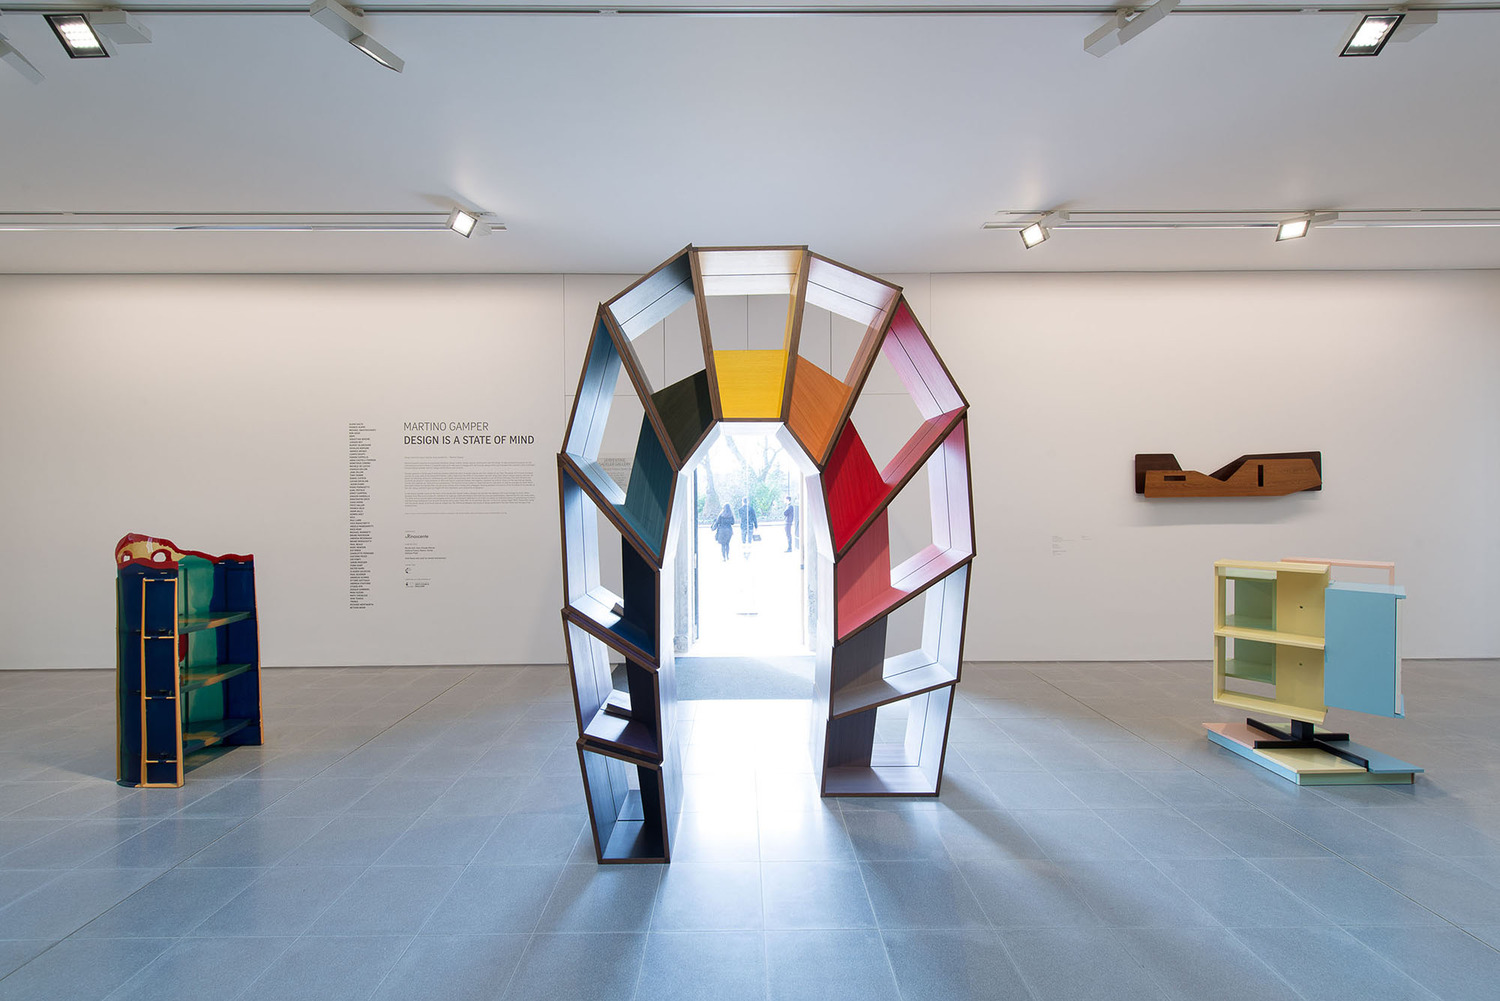 Martino Gamper, L'arco della Pace, 2014, Coloured veneer, poplar plywood, 310 x 210 x 110 cm, Installation view 'Martino Gamper: Design is a State of Mind', Serpentine Sackler Gallery, London, 2014